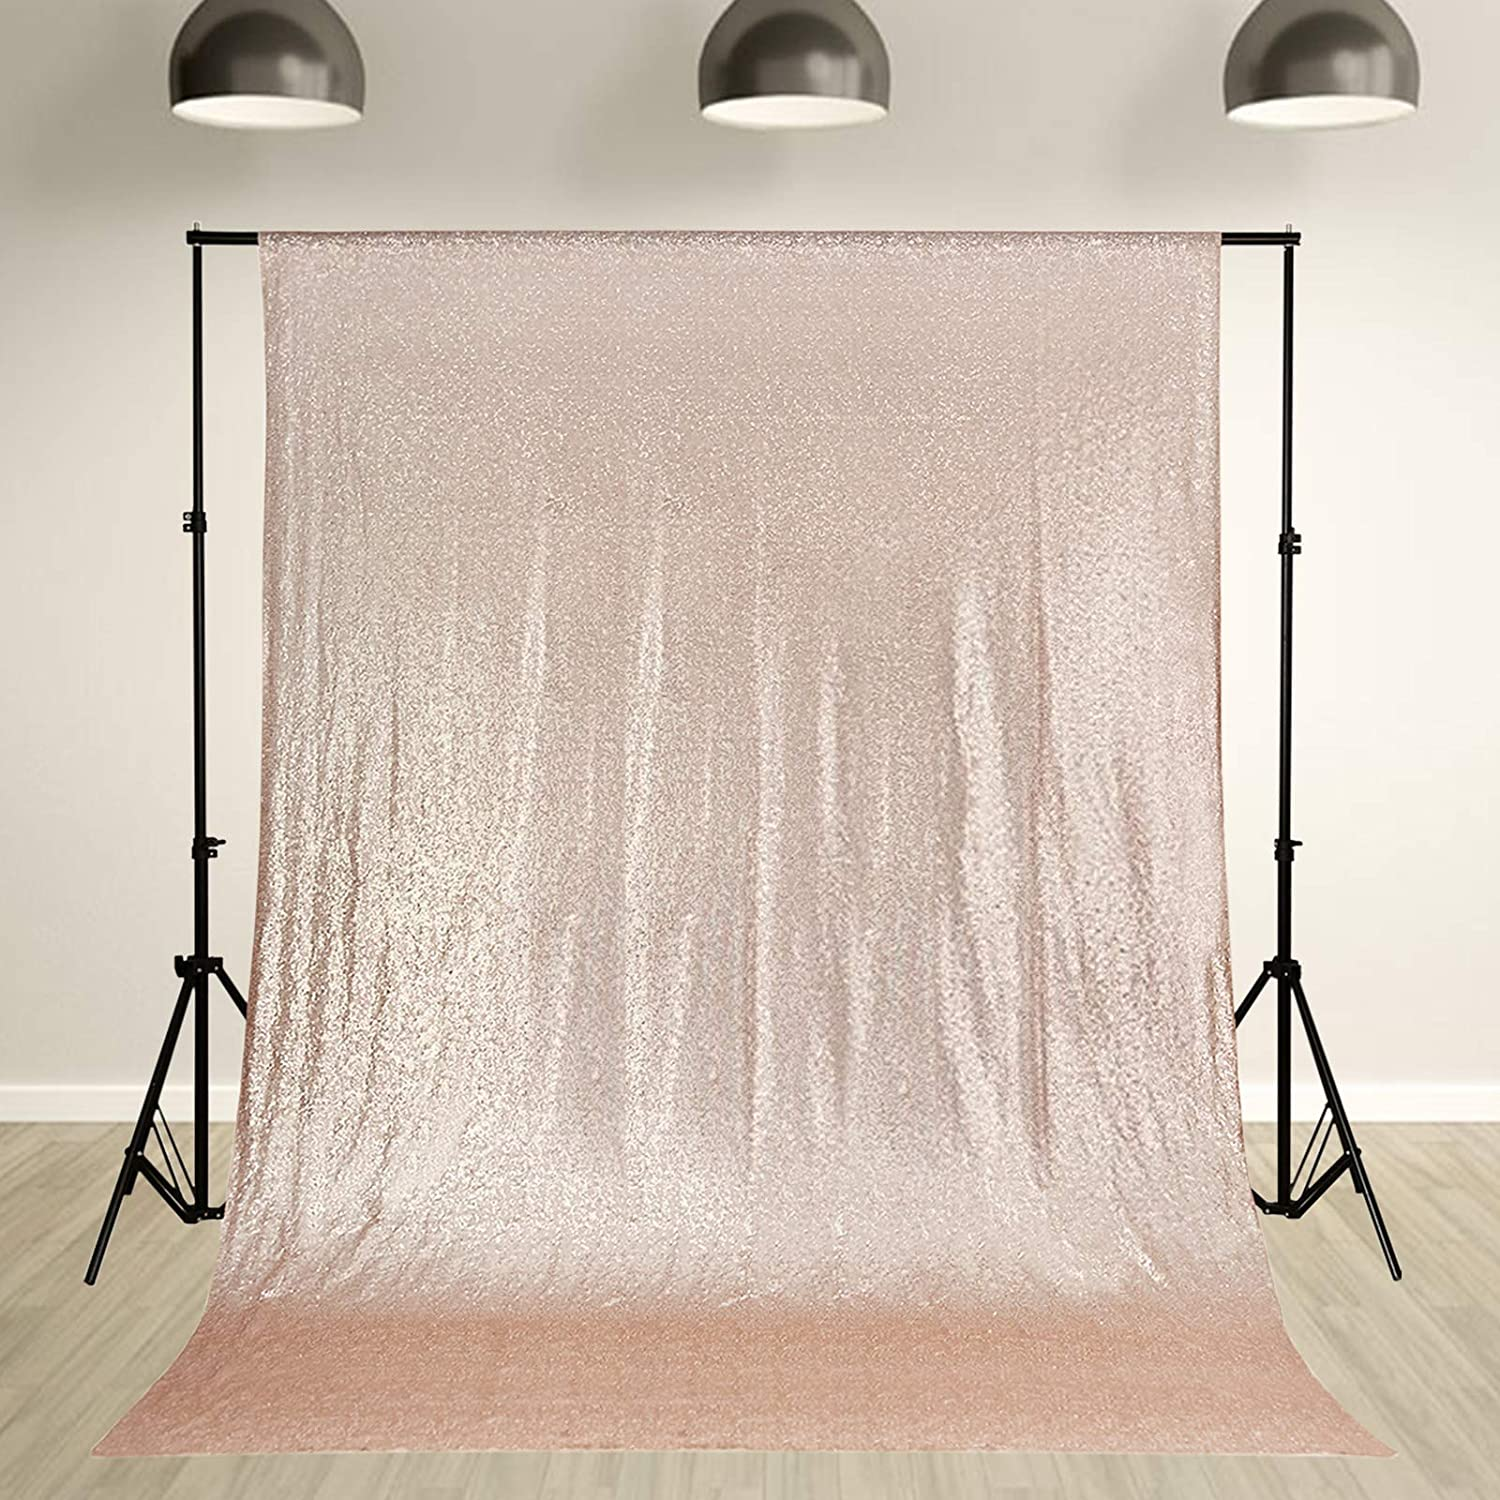 Blue 8 ft x 8 ft Sequined Backdrop Curtain Wedding Party Booth Decorations